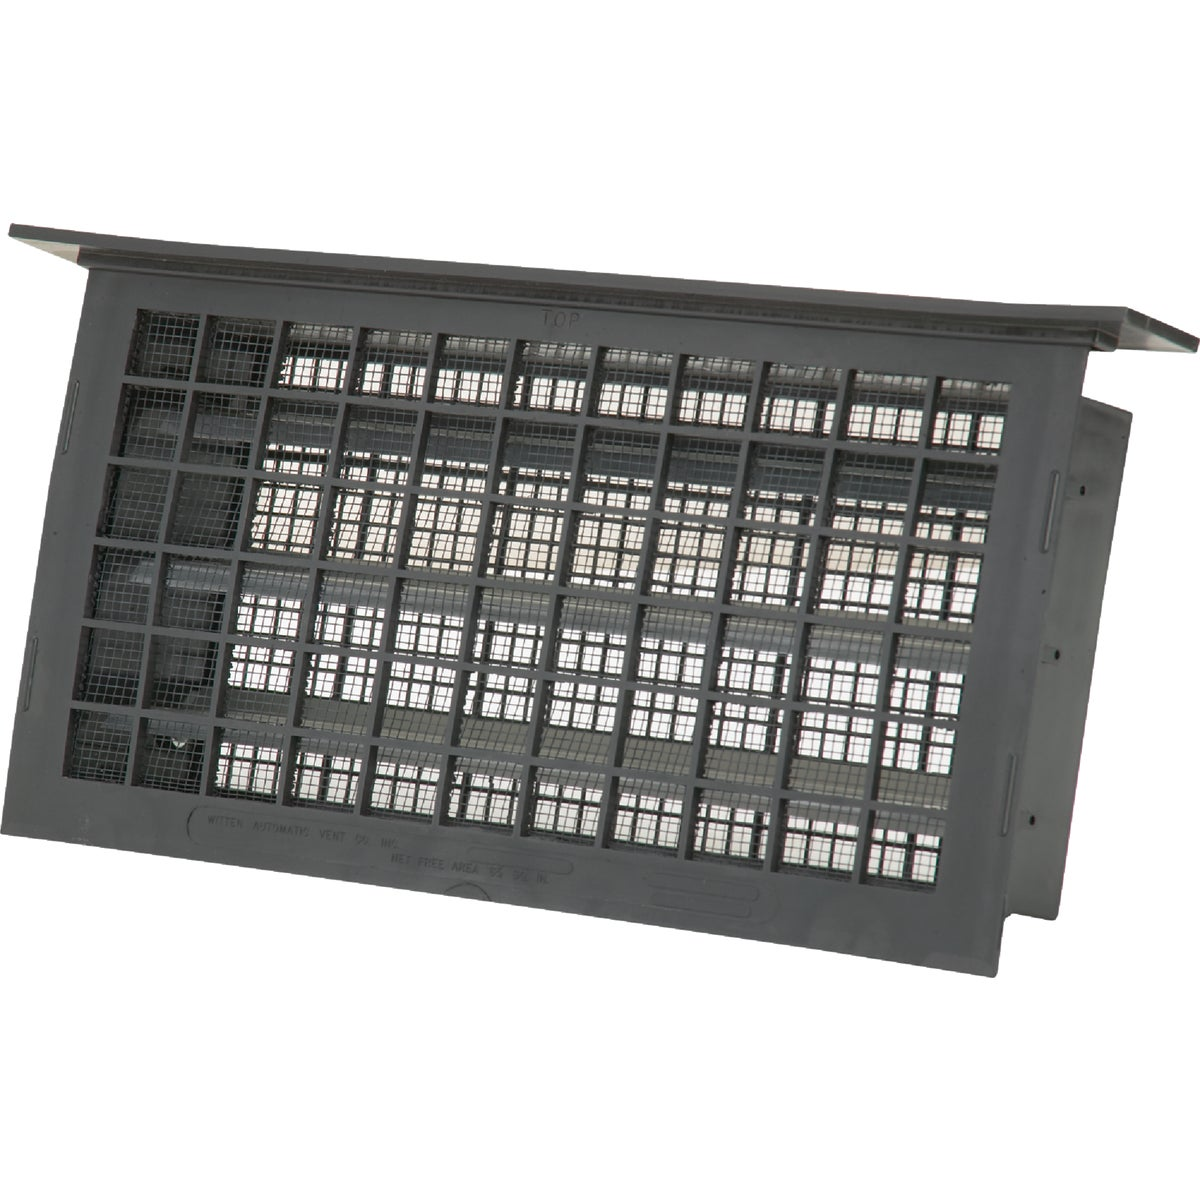 BLK AUTO FOUNDATION VENT - 304LBL by Witten Automatic Vnt